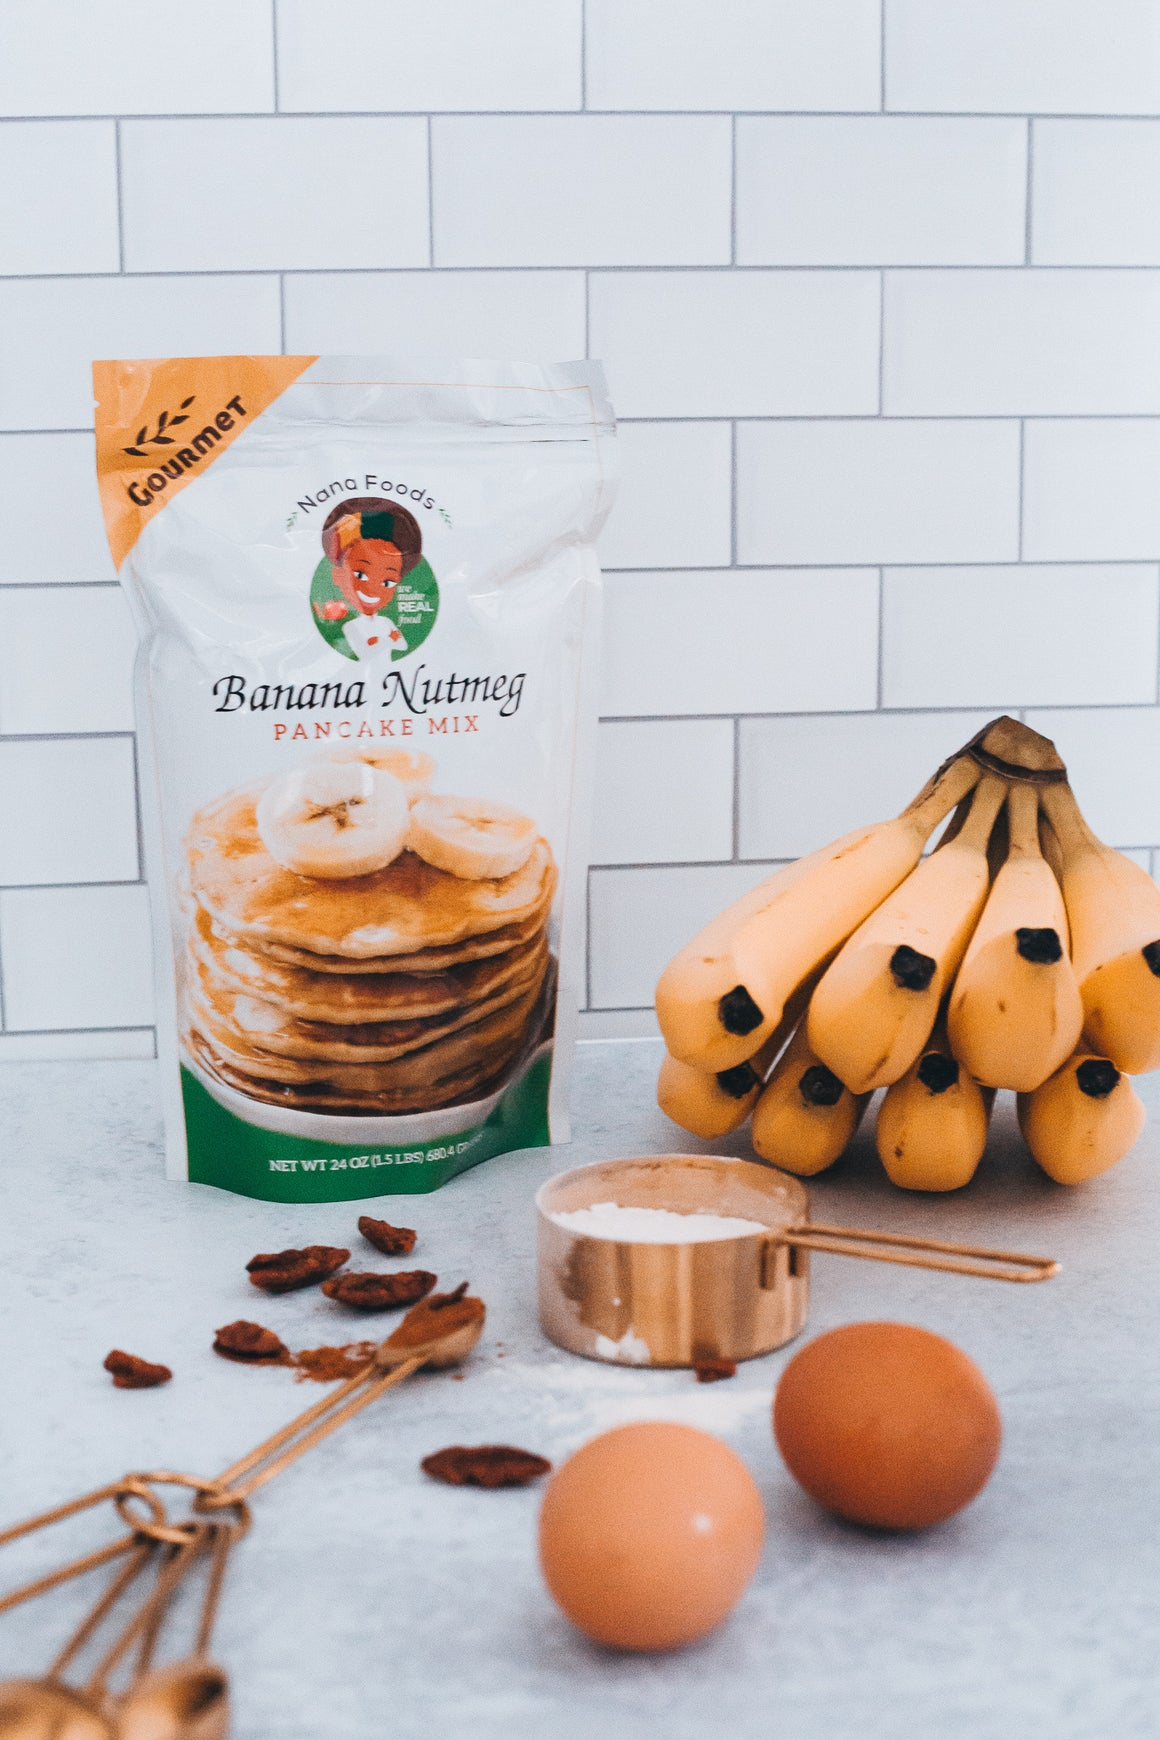 Banana Nutmeg Pancake Mix